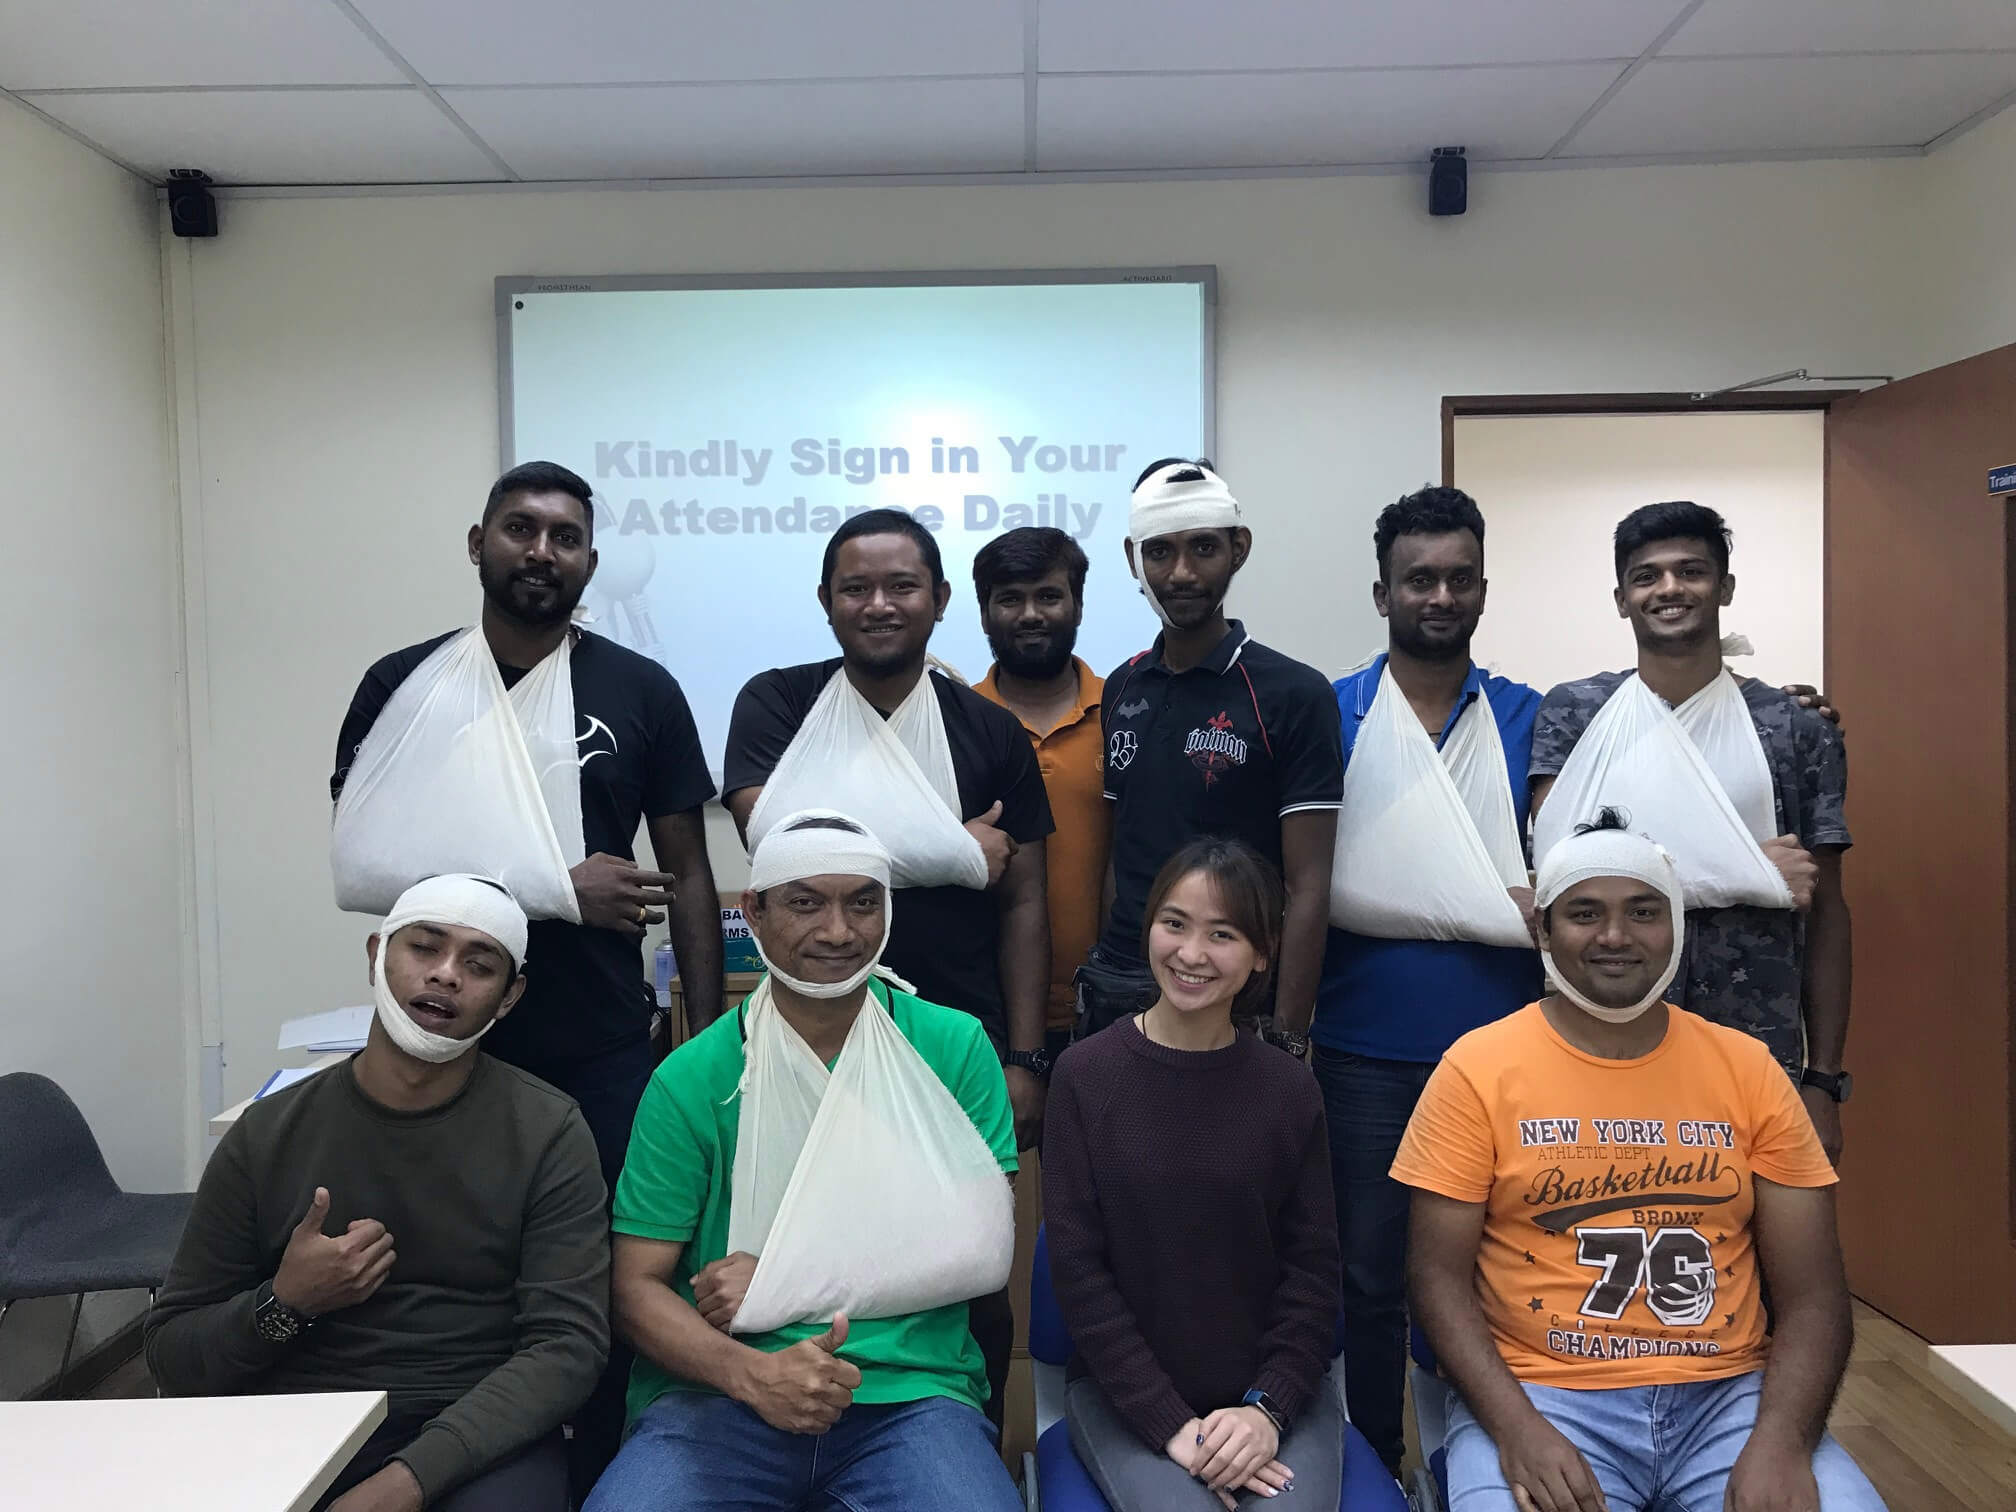 ISO 29990 Occupational First Aid (Singapore) 16-18 Apr 2018